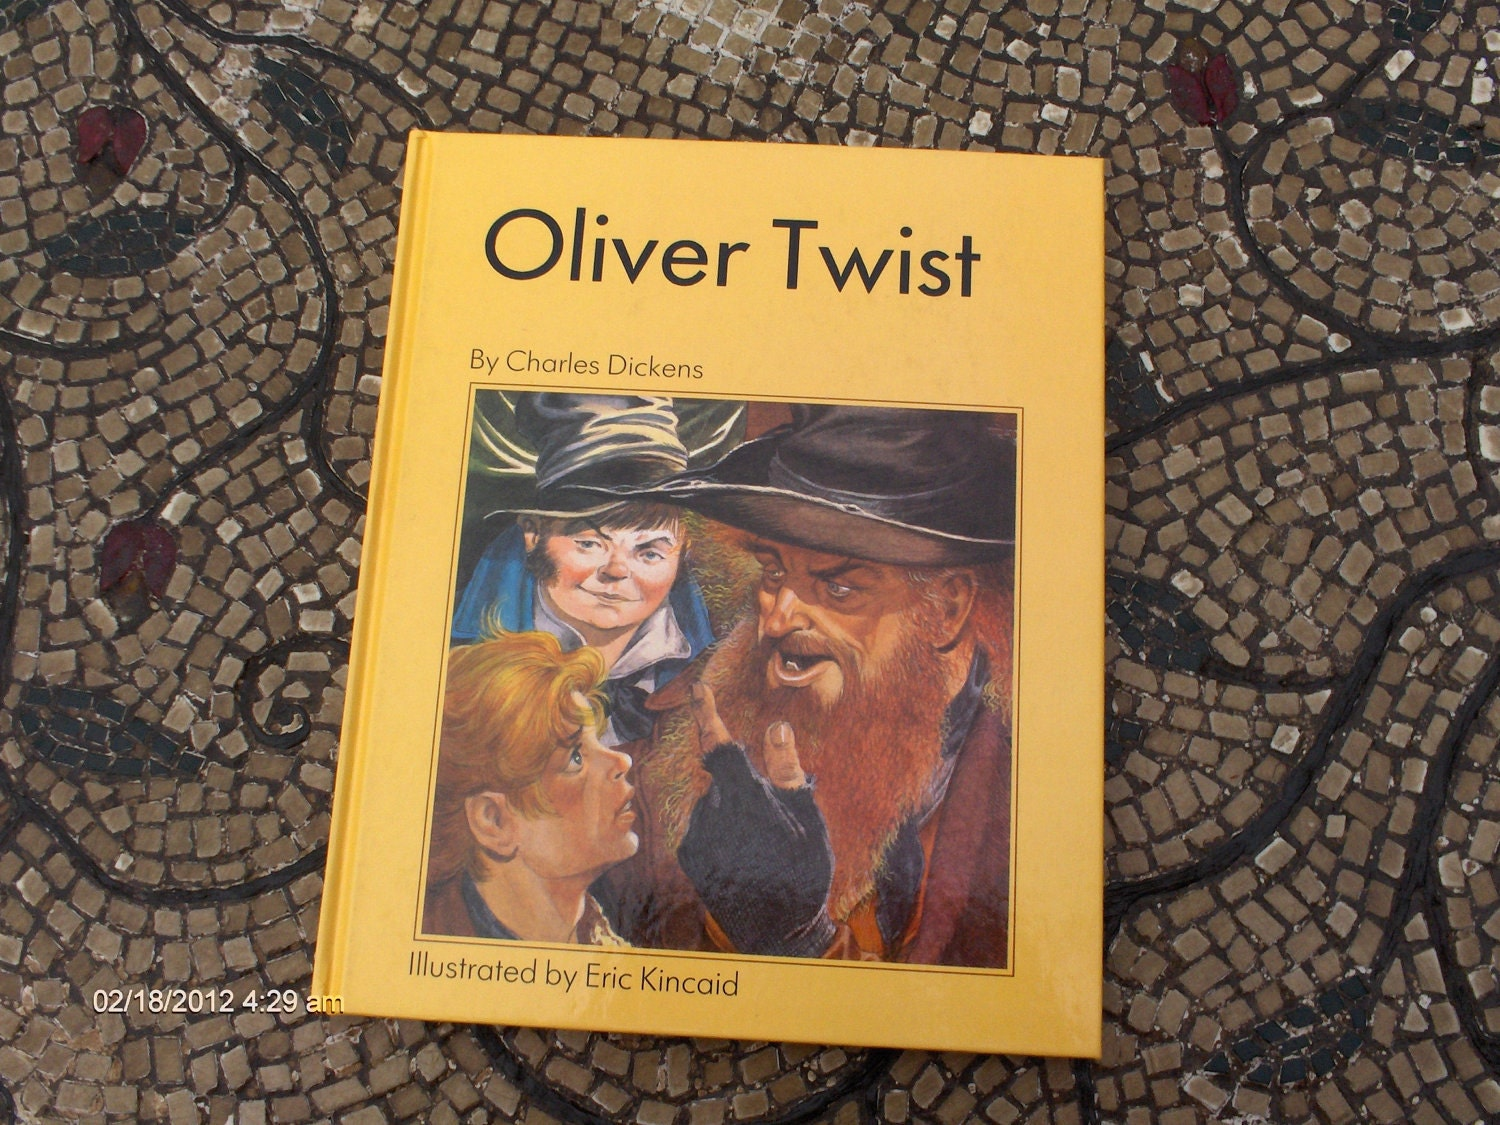 an analysis of lago in oliver twist by charles dickens Oliver twist charles dickens editorial director justin kestler analysis of major characters 13 oliver twist 13 nancy 14 fagin 14 themes, motifs & symbols 17.